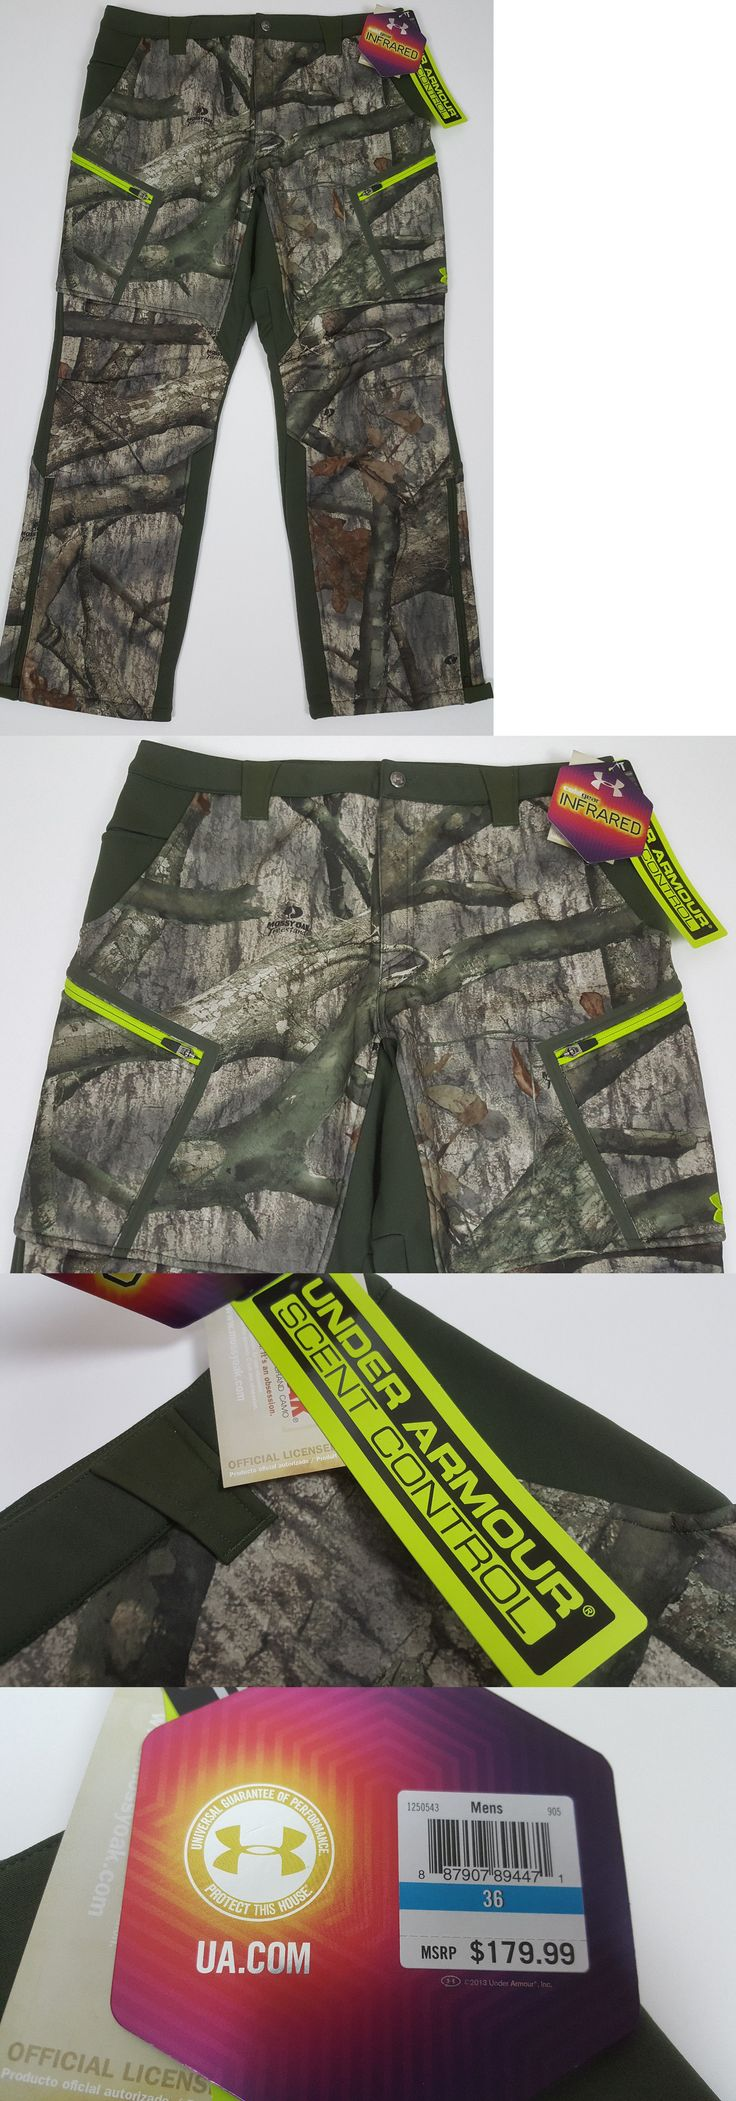 Pants and Bibs 177873: Under Armour Cgi Sc Speed Freek Hunting Pants Mossy Oak Camo $180 1250543 =Sz 36 -> BUY IT NOW ONLY: $74.99 on eBay!